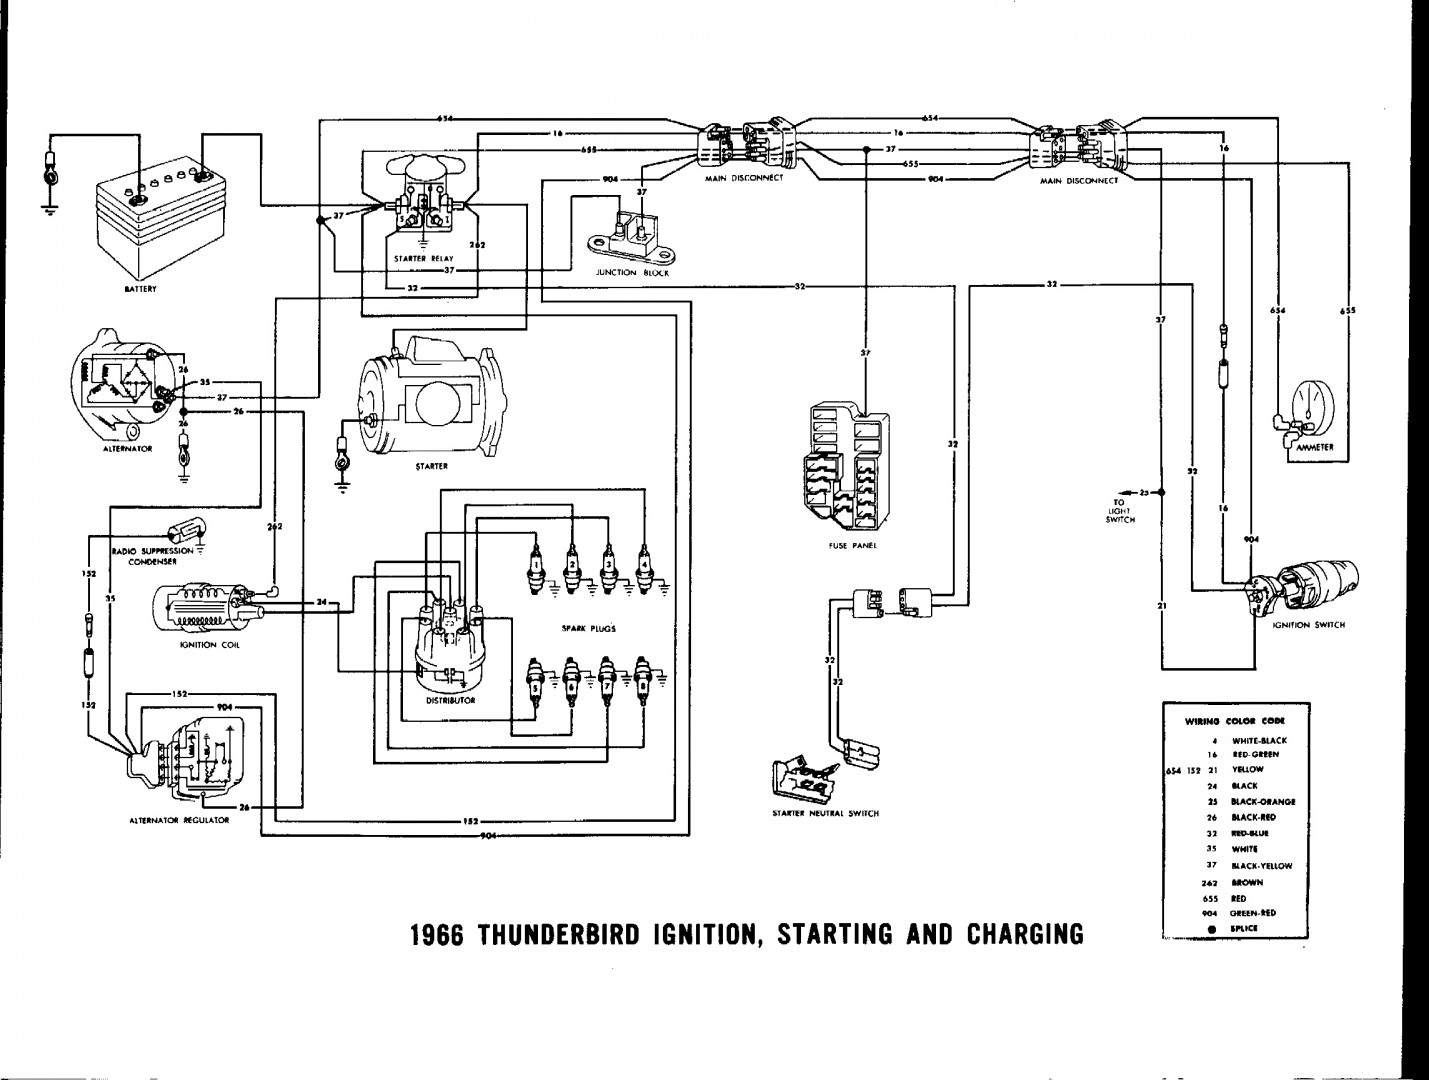 1966 Thunderbird iginition diagram ford thunderbird shop manuals Equus Fuel Gauge Wiring Diagram at bakdesigns.co